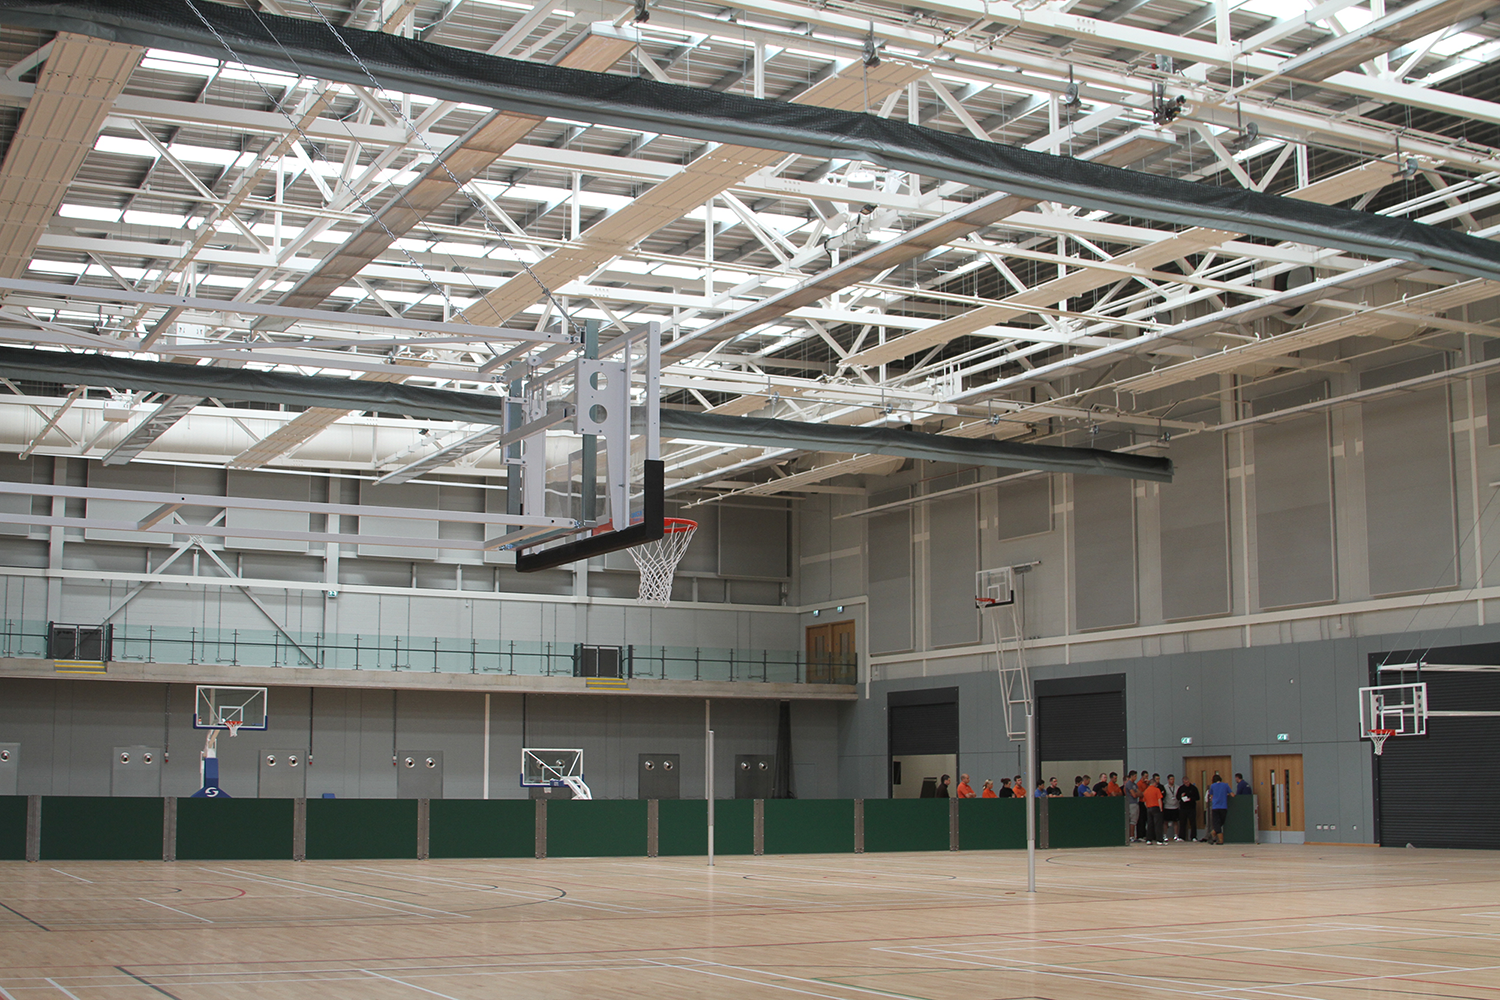 Emirates Arena Sports Hall Basketball Goals & Motorised Dividers by Unisport